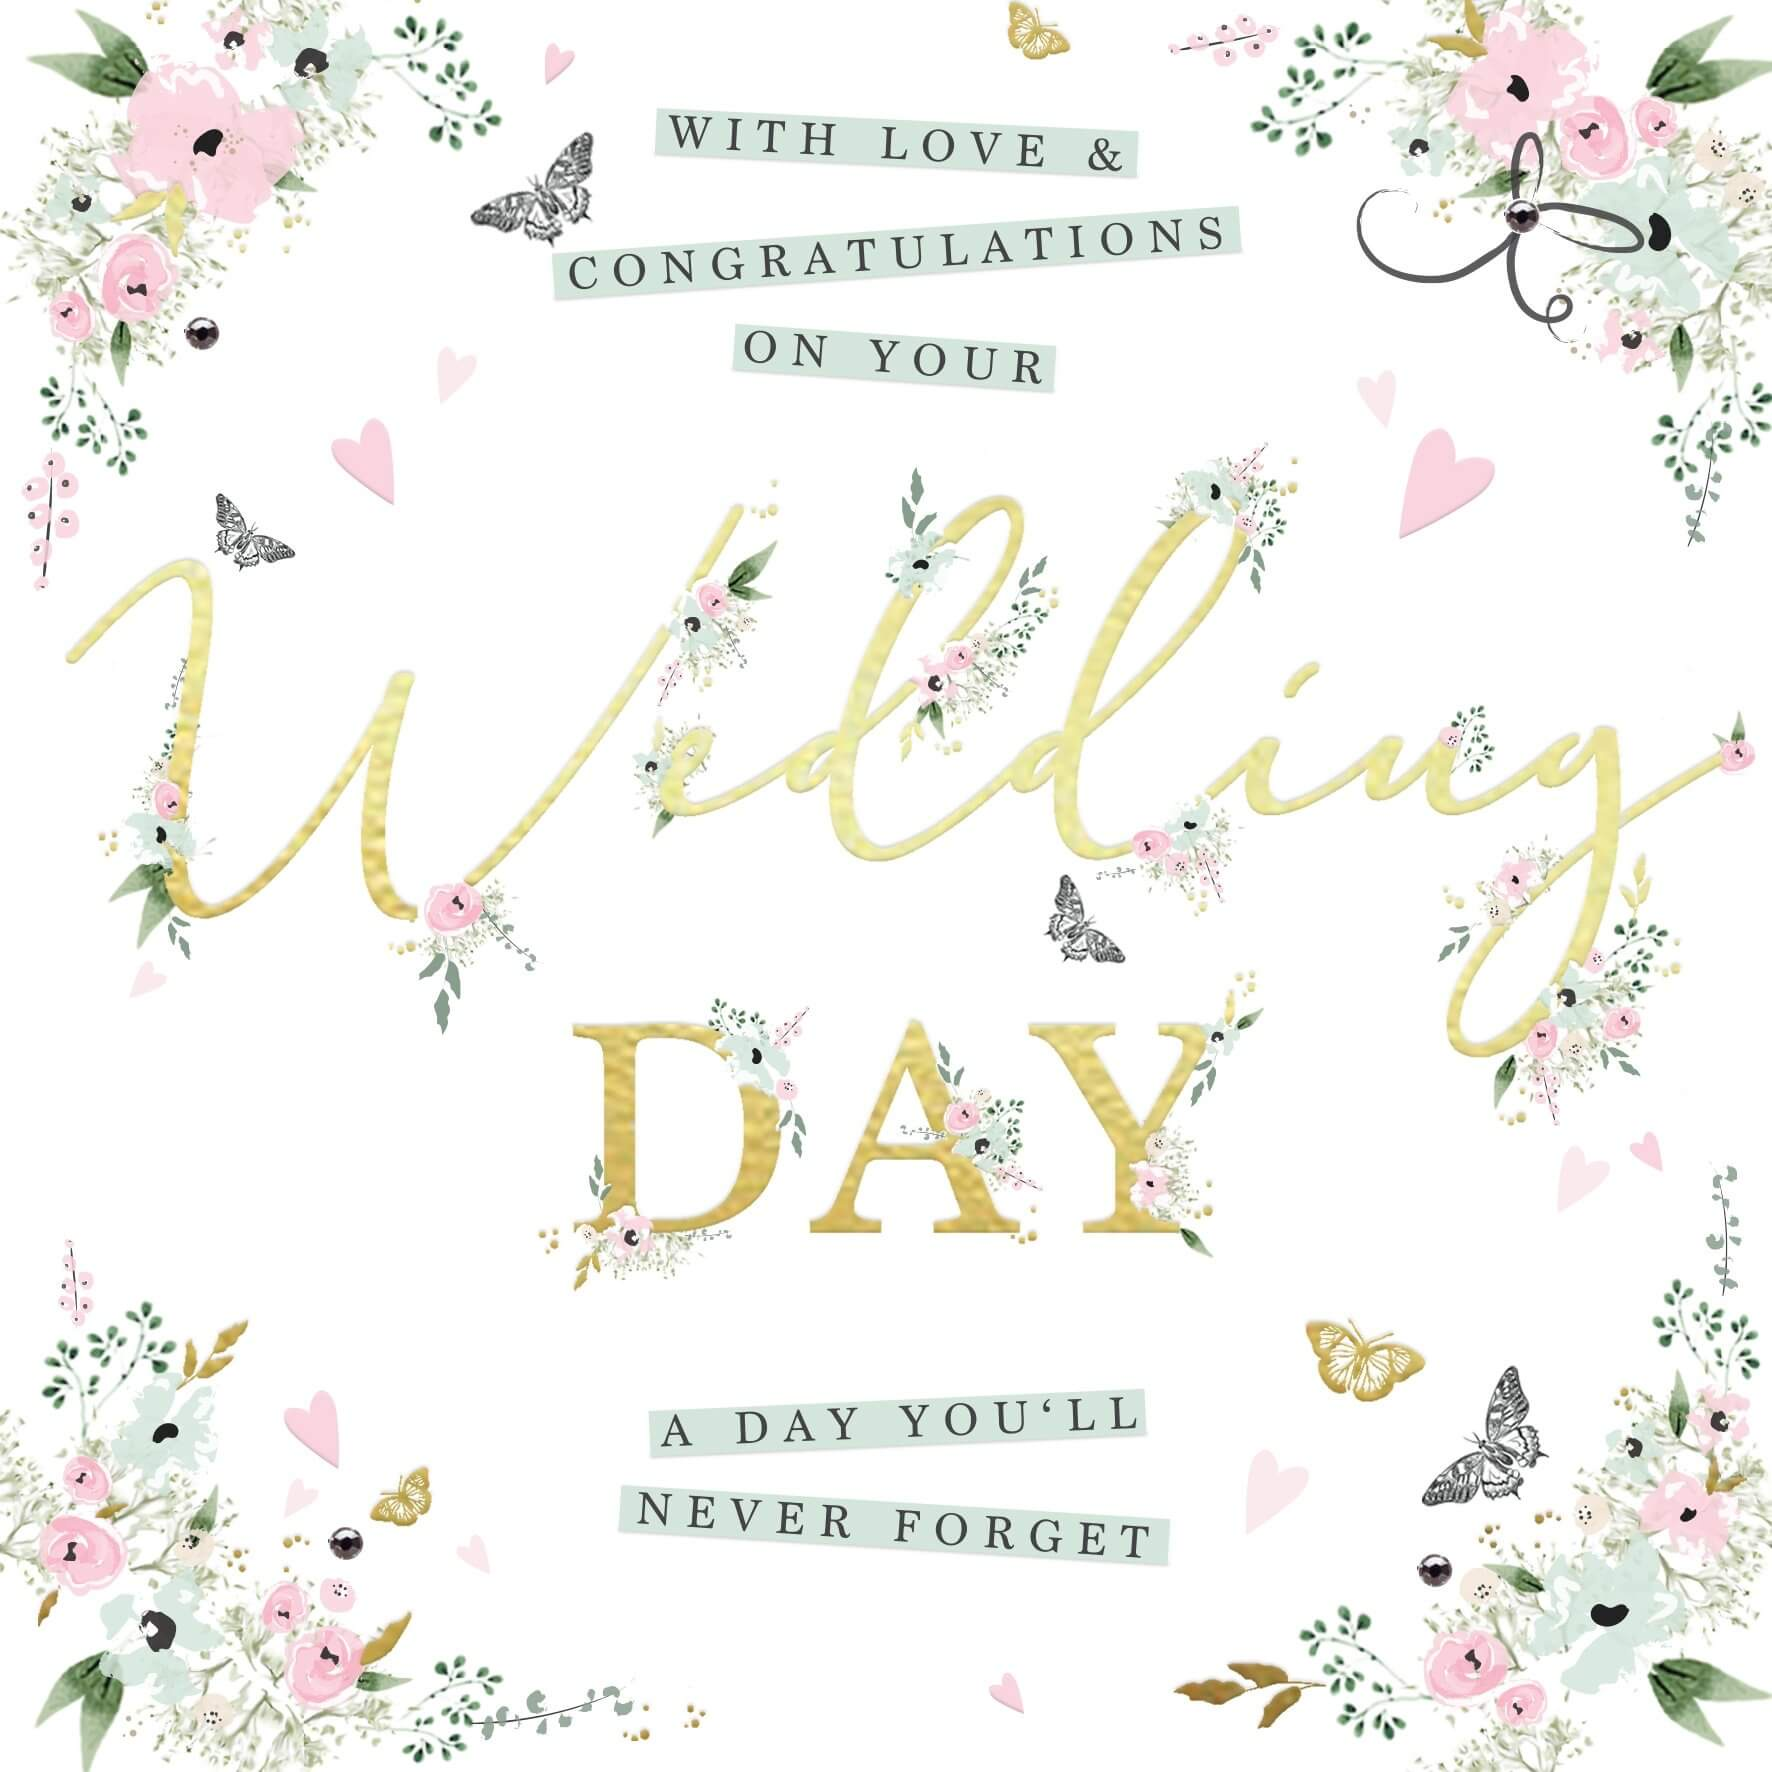 Congratulations On Your Wedding Day.With Love And Congratulations On Your Wedding Day Wb05 Wedding